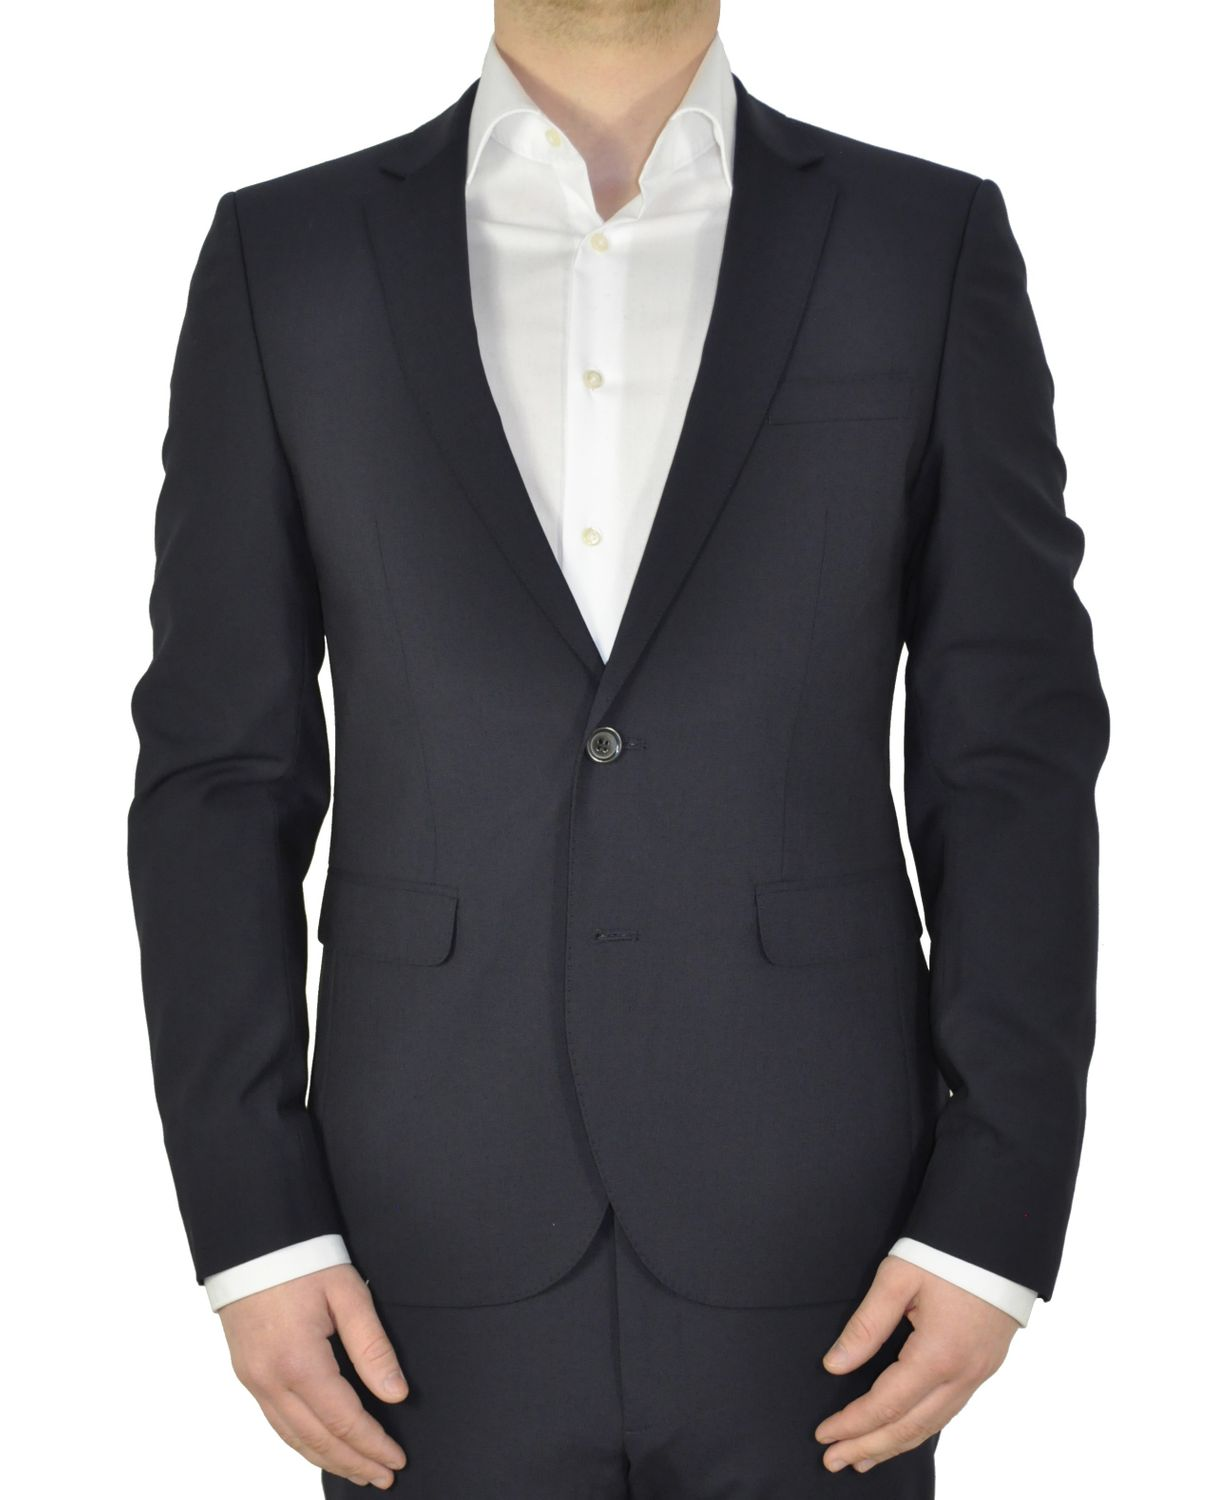 White Bros. - Slim Fit Sakko in Schwarz oder Dunkelblau (Art.: 8851624) 001